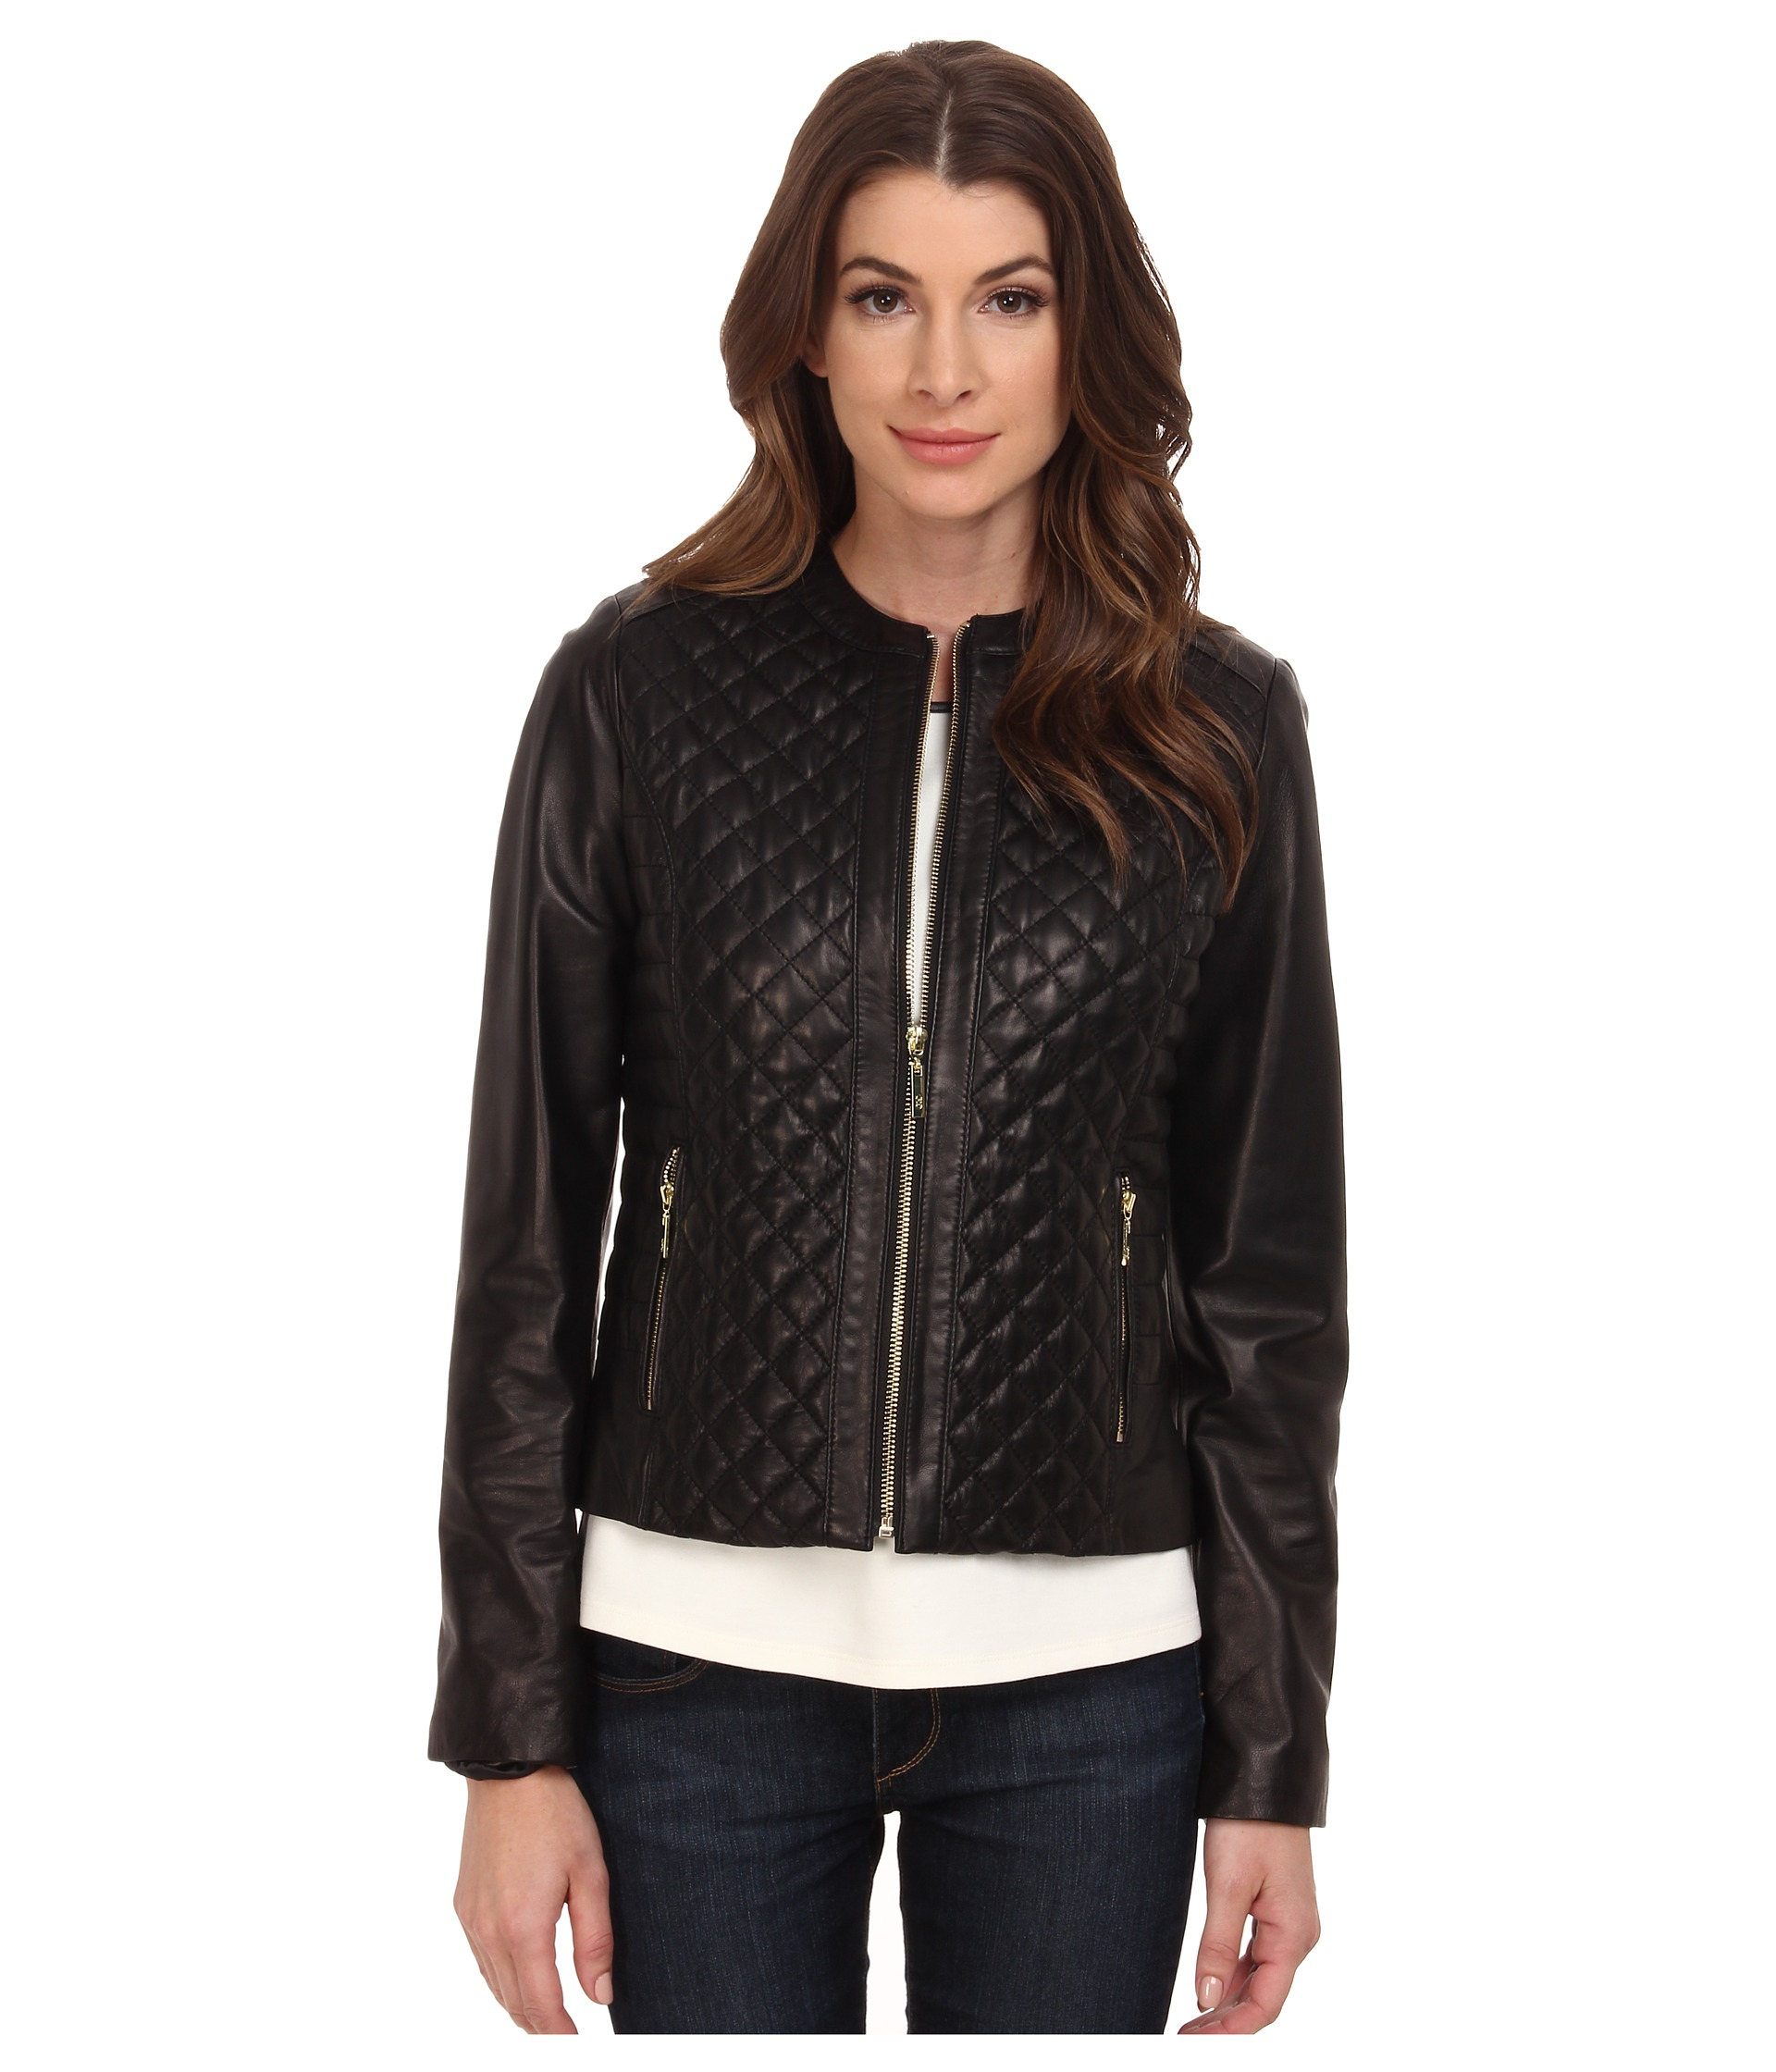 8baa2b9b576 Gallery. Previously sold at  Zappos · Women s Quilted Jackets Women s  Collarless Leather ...